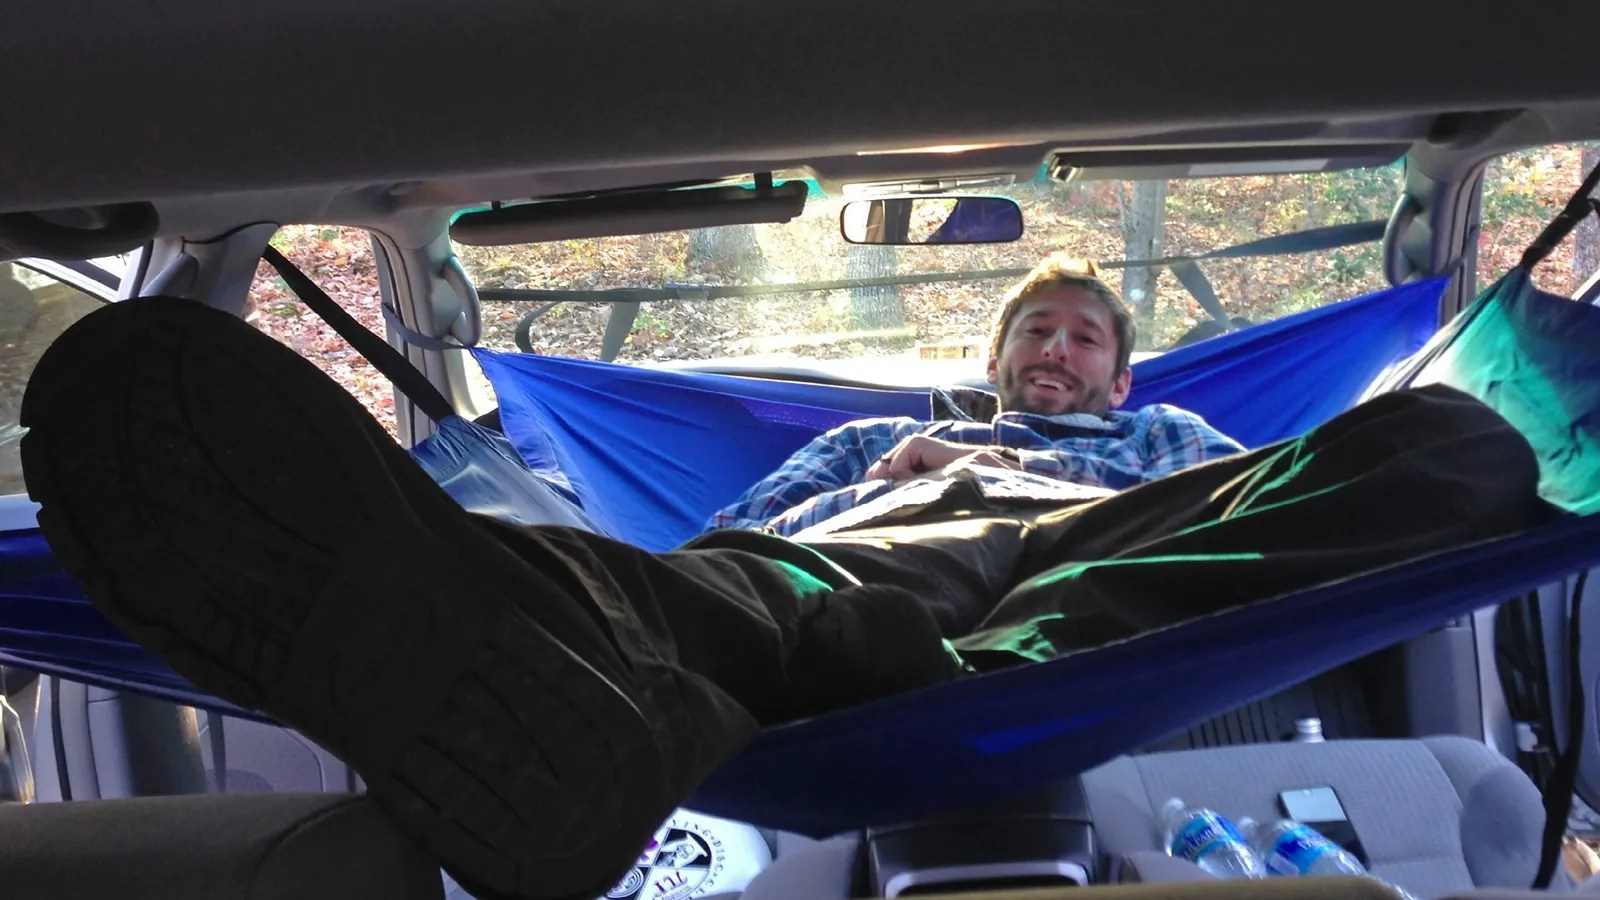 A Hammock For Your Car Gives You A Cheap Home If The